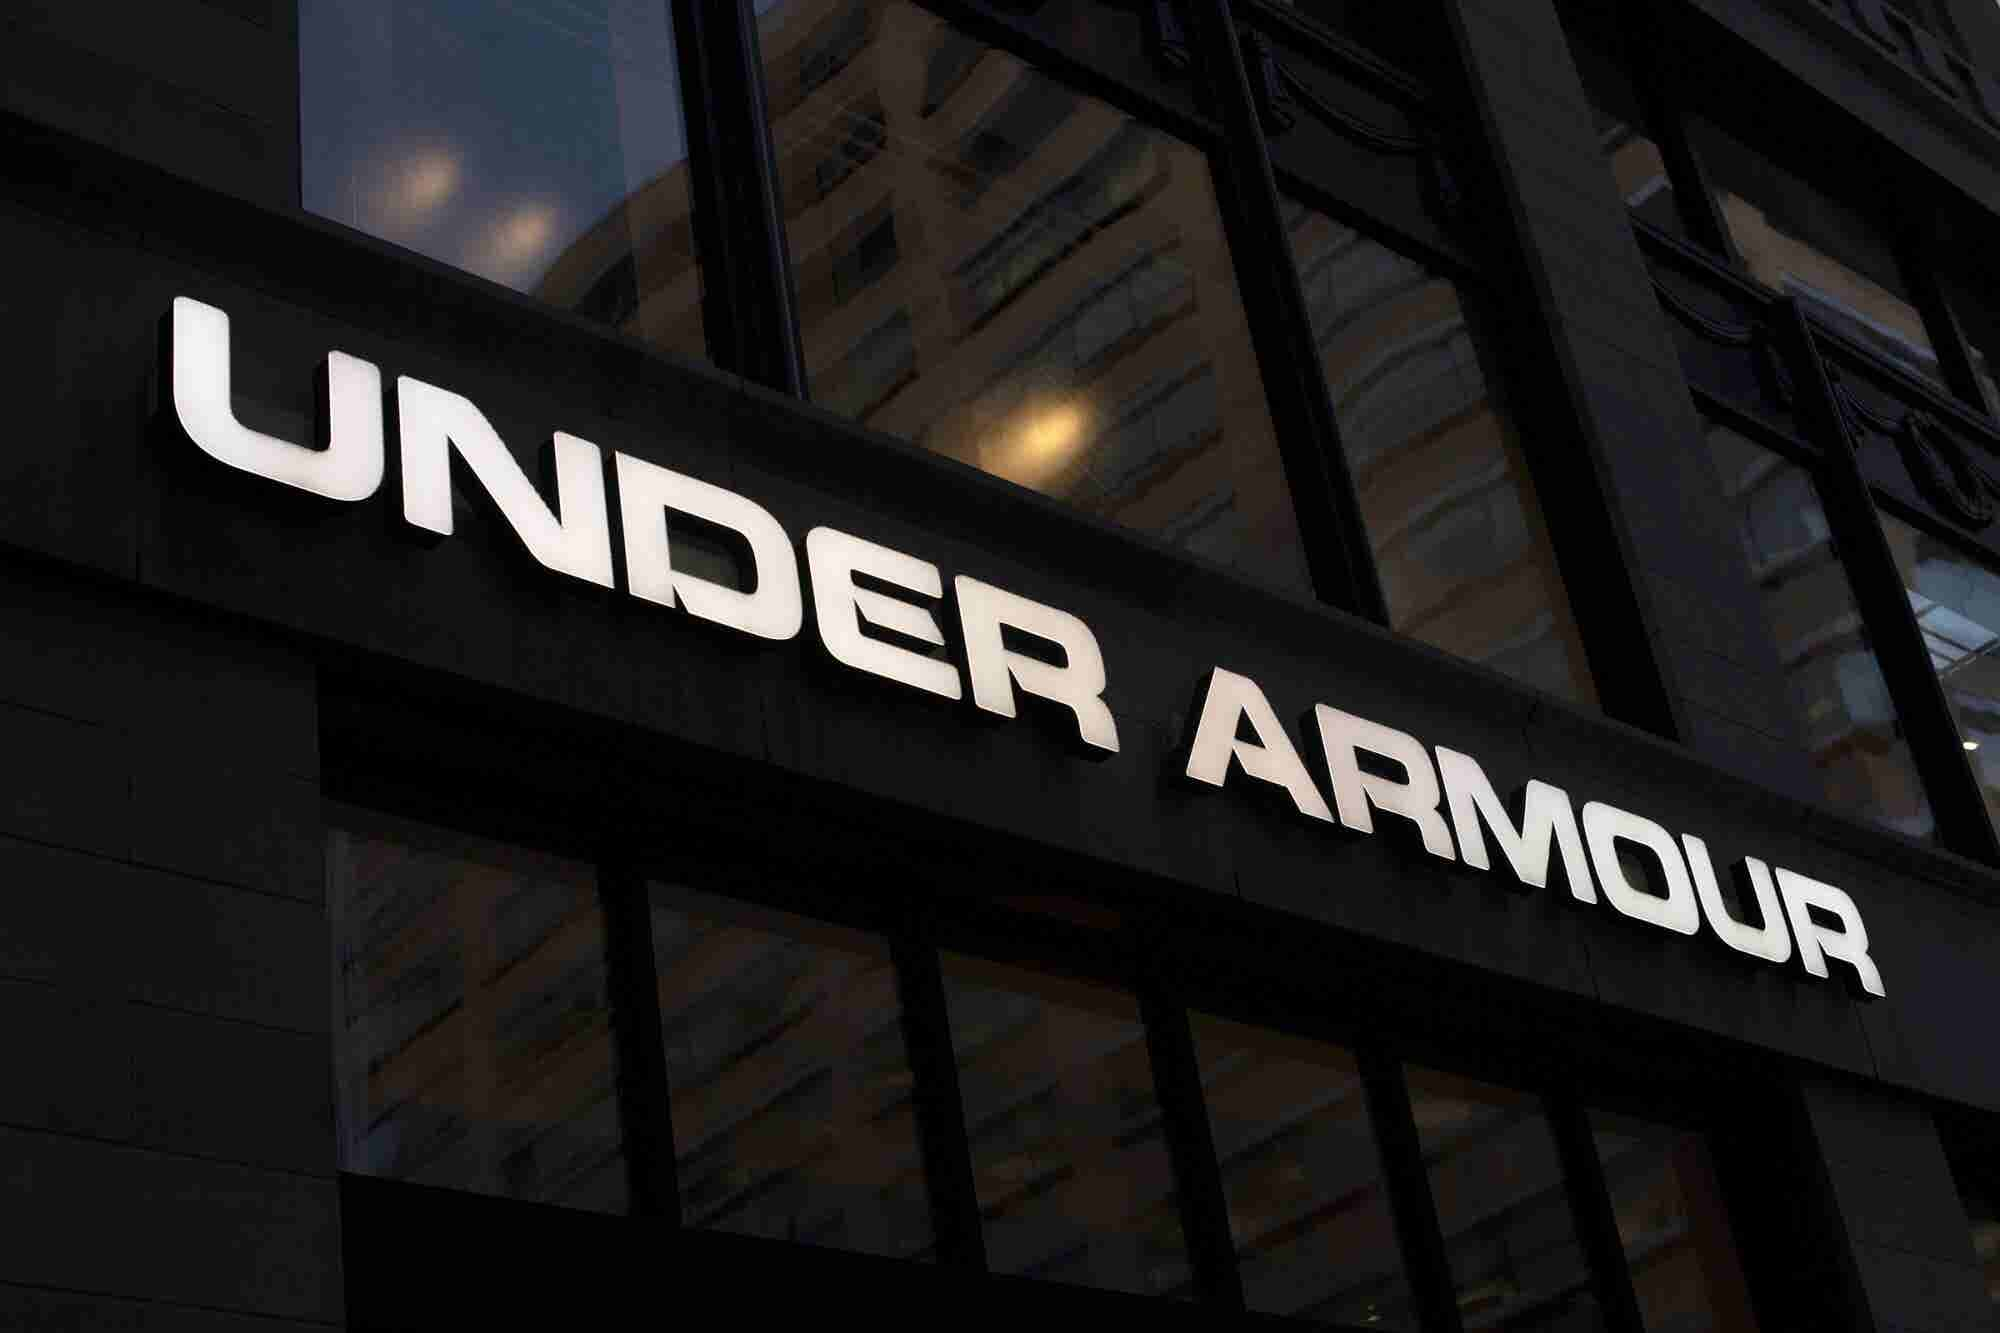 Under Armour CEO on Reimbursing Visits to Strip Clubs: 'This Is Not the Culture We Envision'